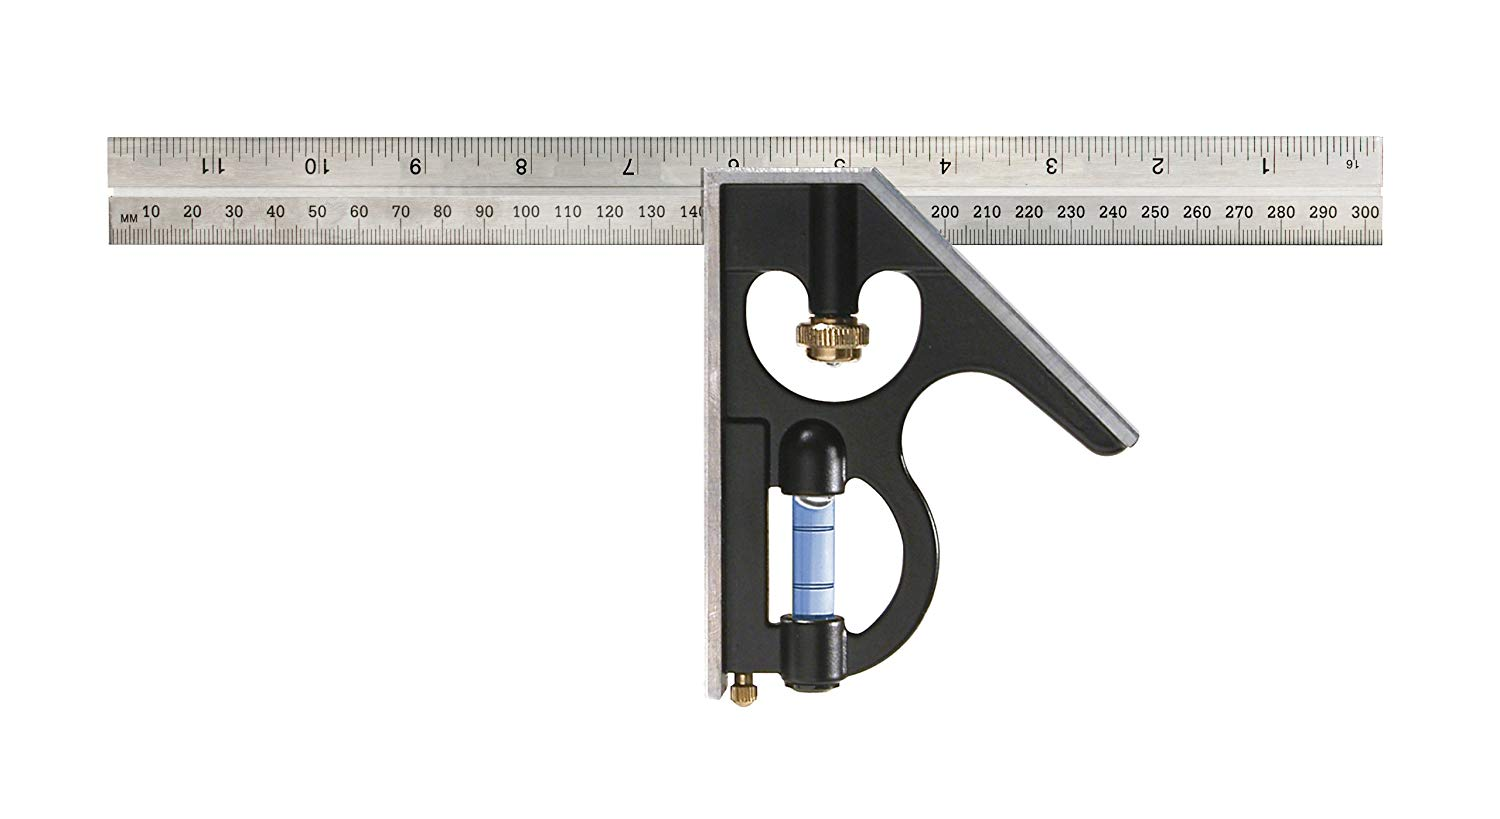 Empire E250IM Heavy Duty Professional Combination Square, 12-Inch (300 mm.) - ฉากผสม ยาว 12นิ้ว 300 มม.)